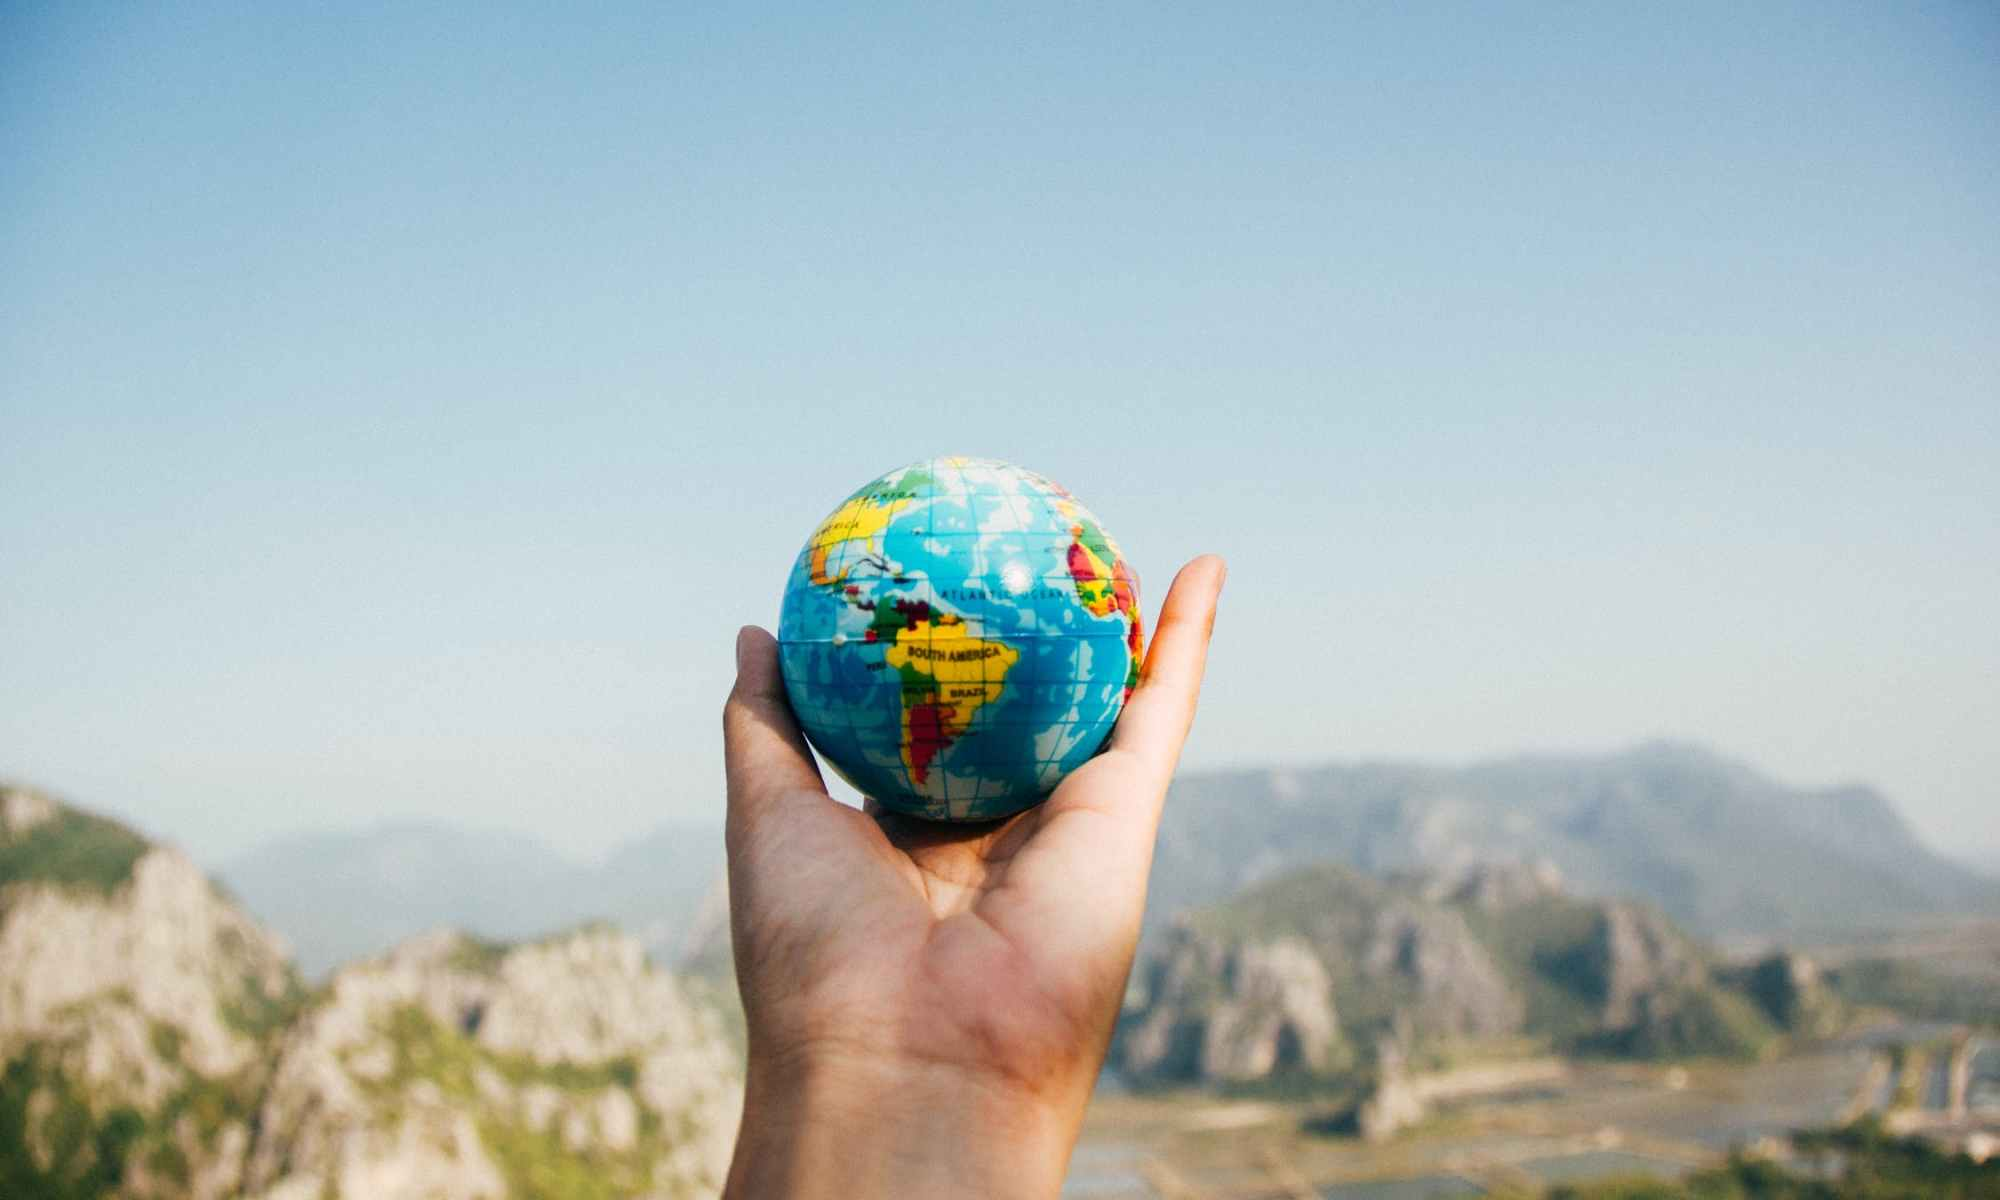 Hand holding mini globe in front of mountains